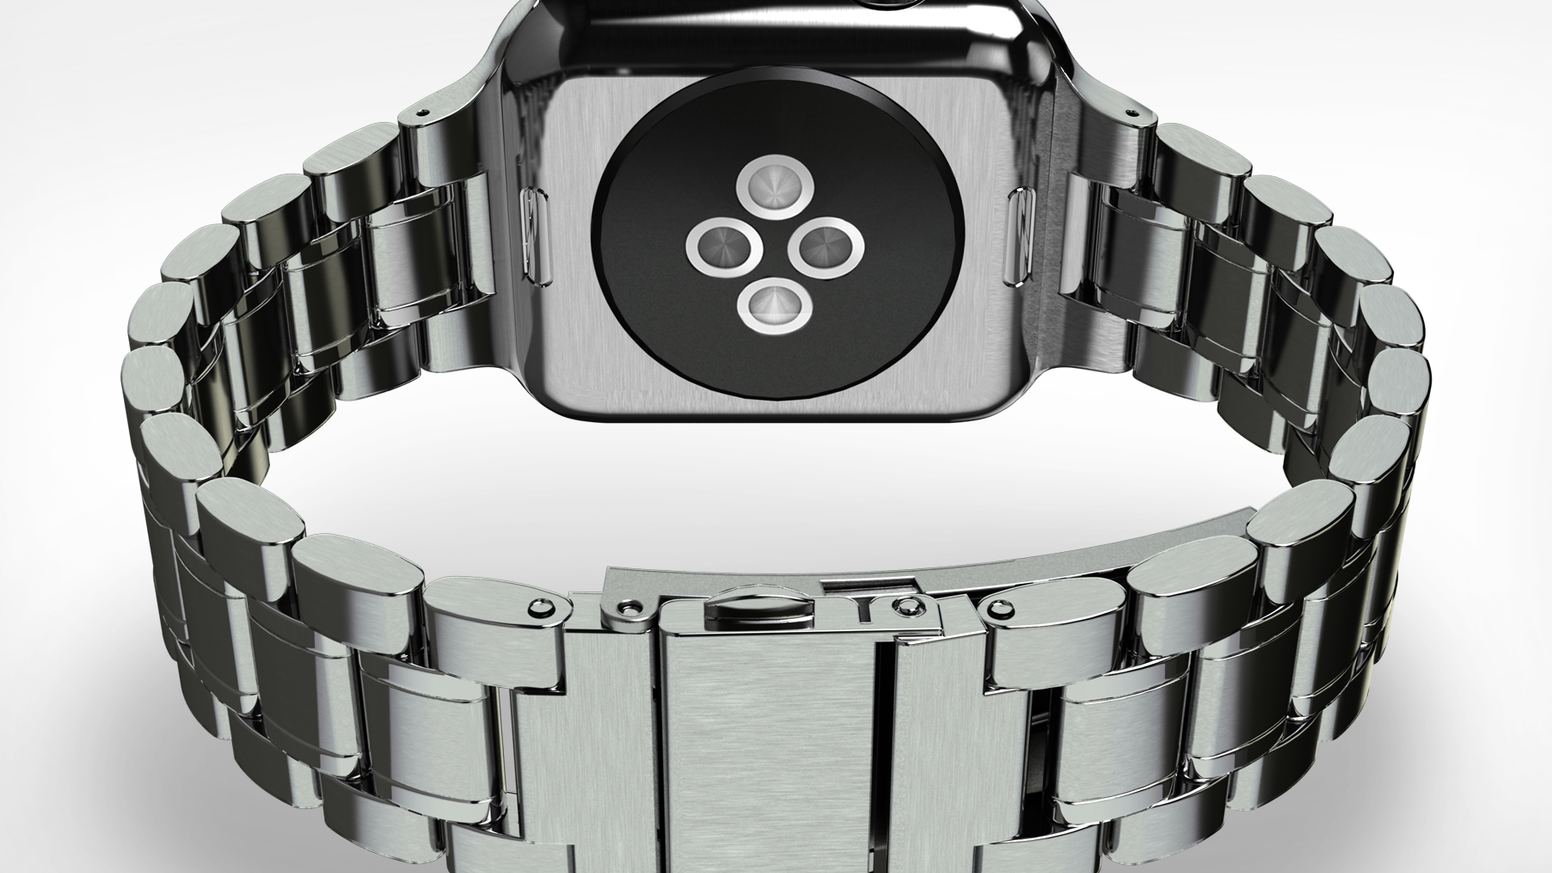 Only $49. Get the stainless steel link bracelet band that your Apple Watch truly deserve. Made from the same 316L stainless steel alloy